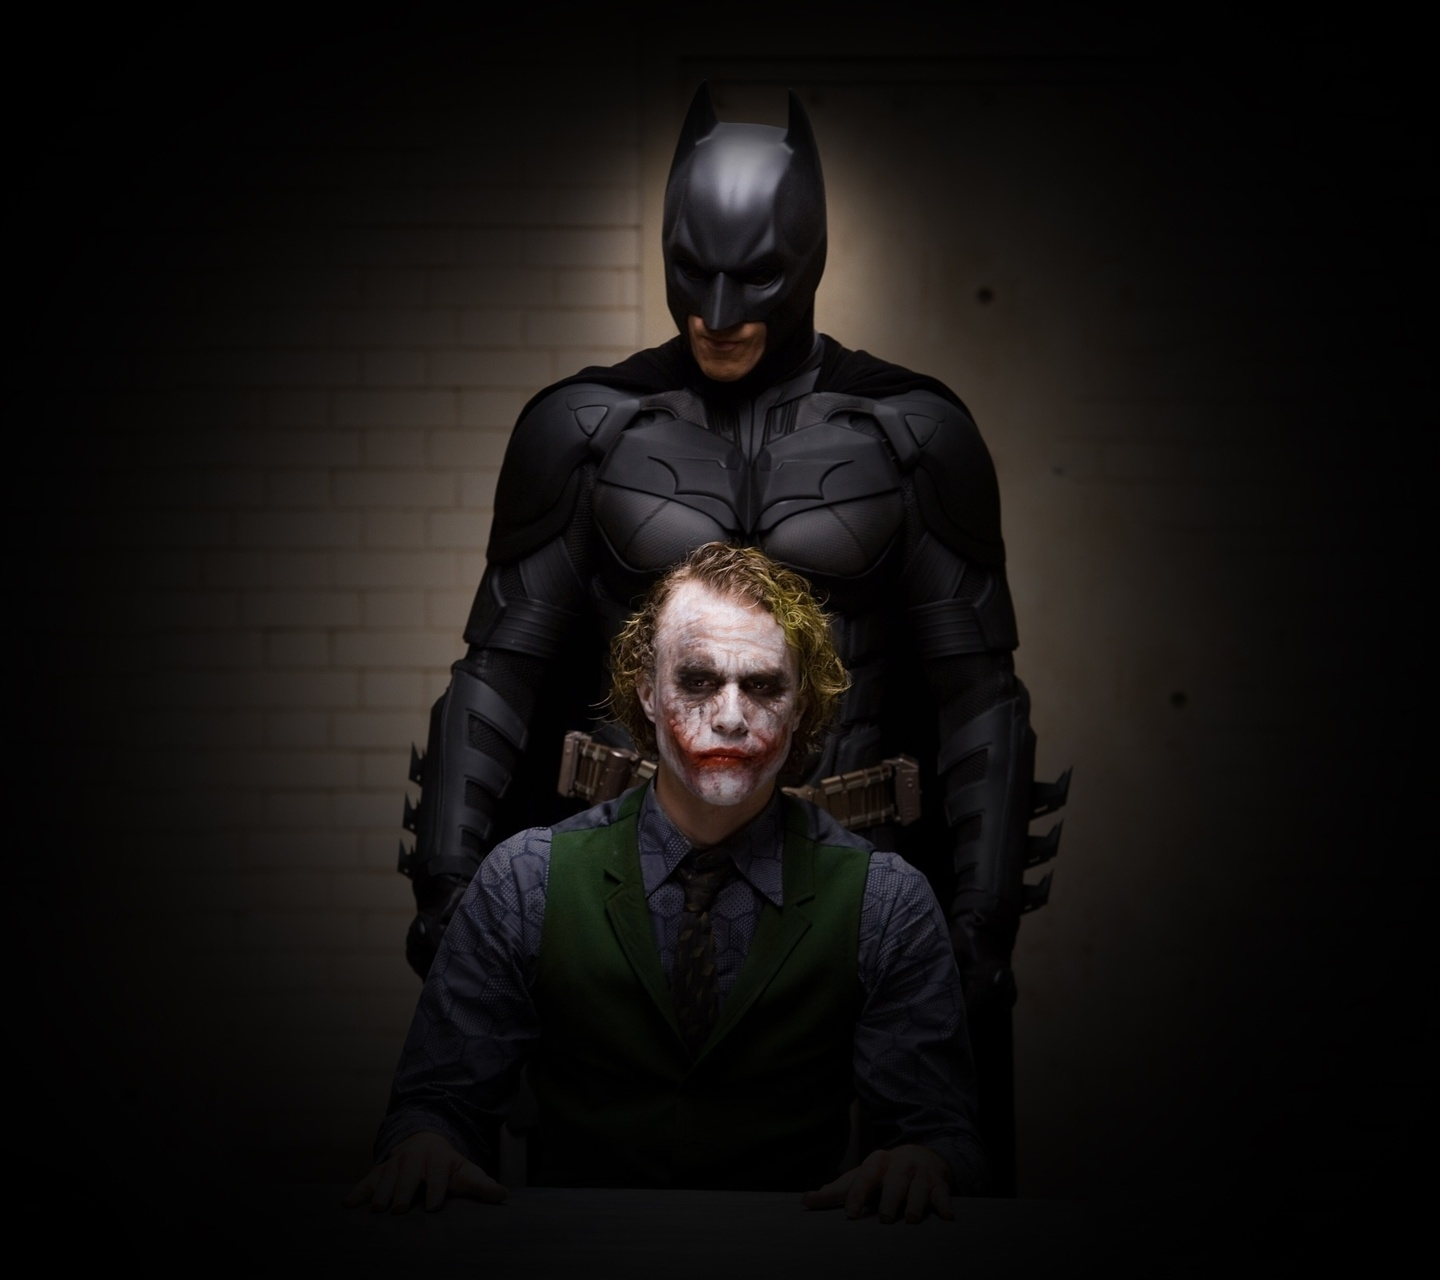 Batman Vs Joker HD Wallpaper Images amp Pictures   Becuo 1440x1280